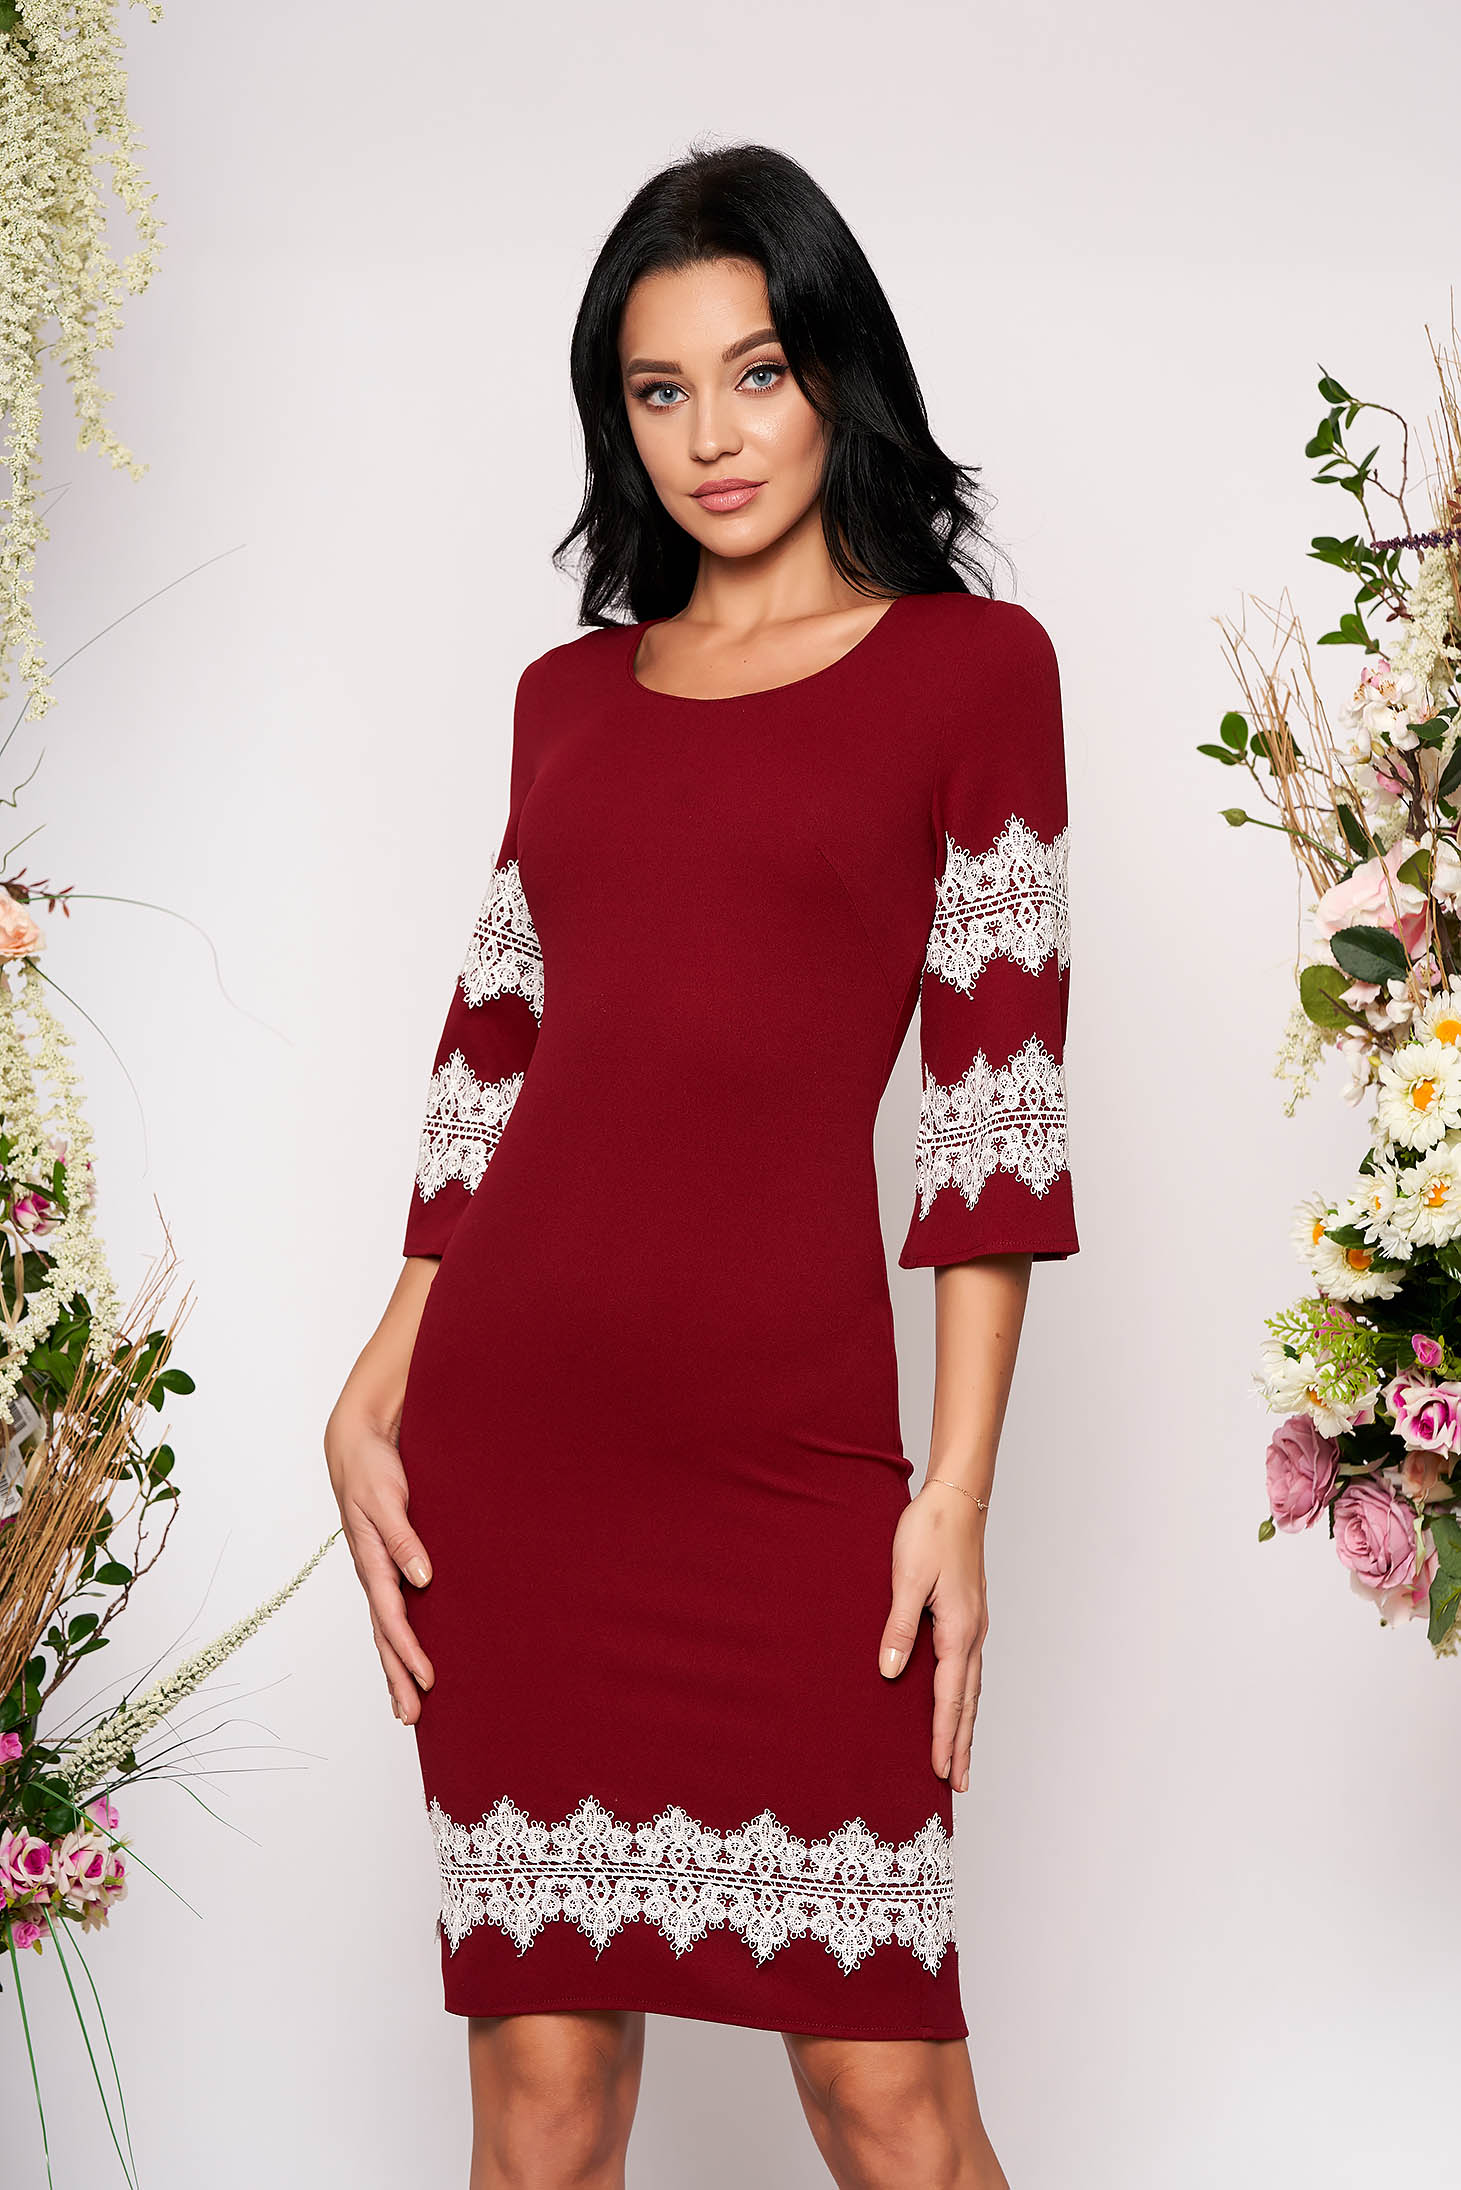 Burgundy dress elegant short cut pencil with 3/4 sleeves with bell sleeve with lace details with rounded cleavage